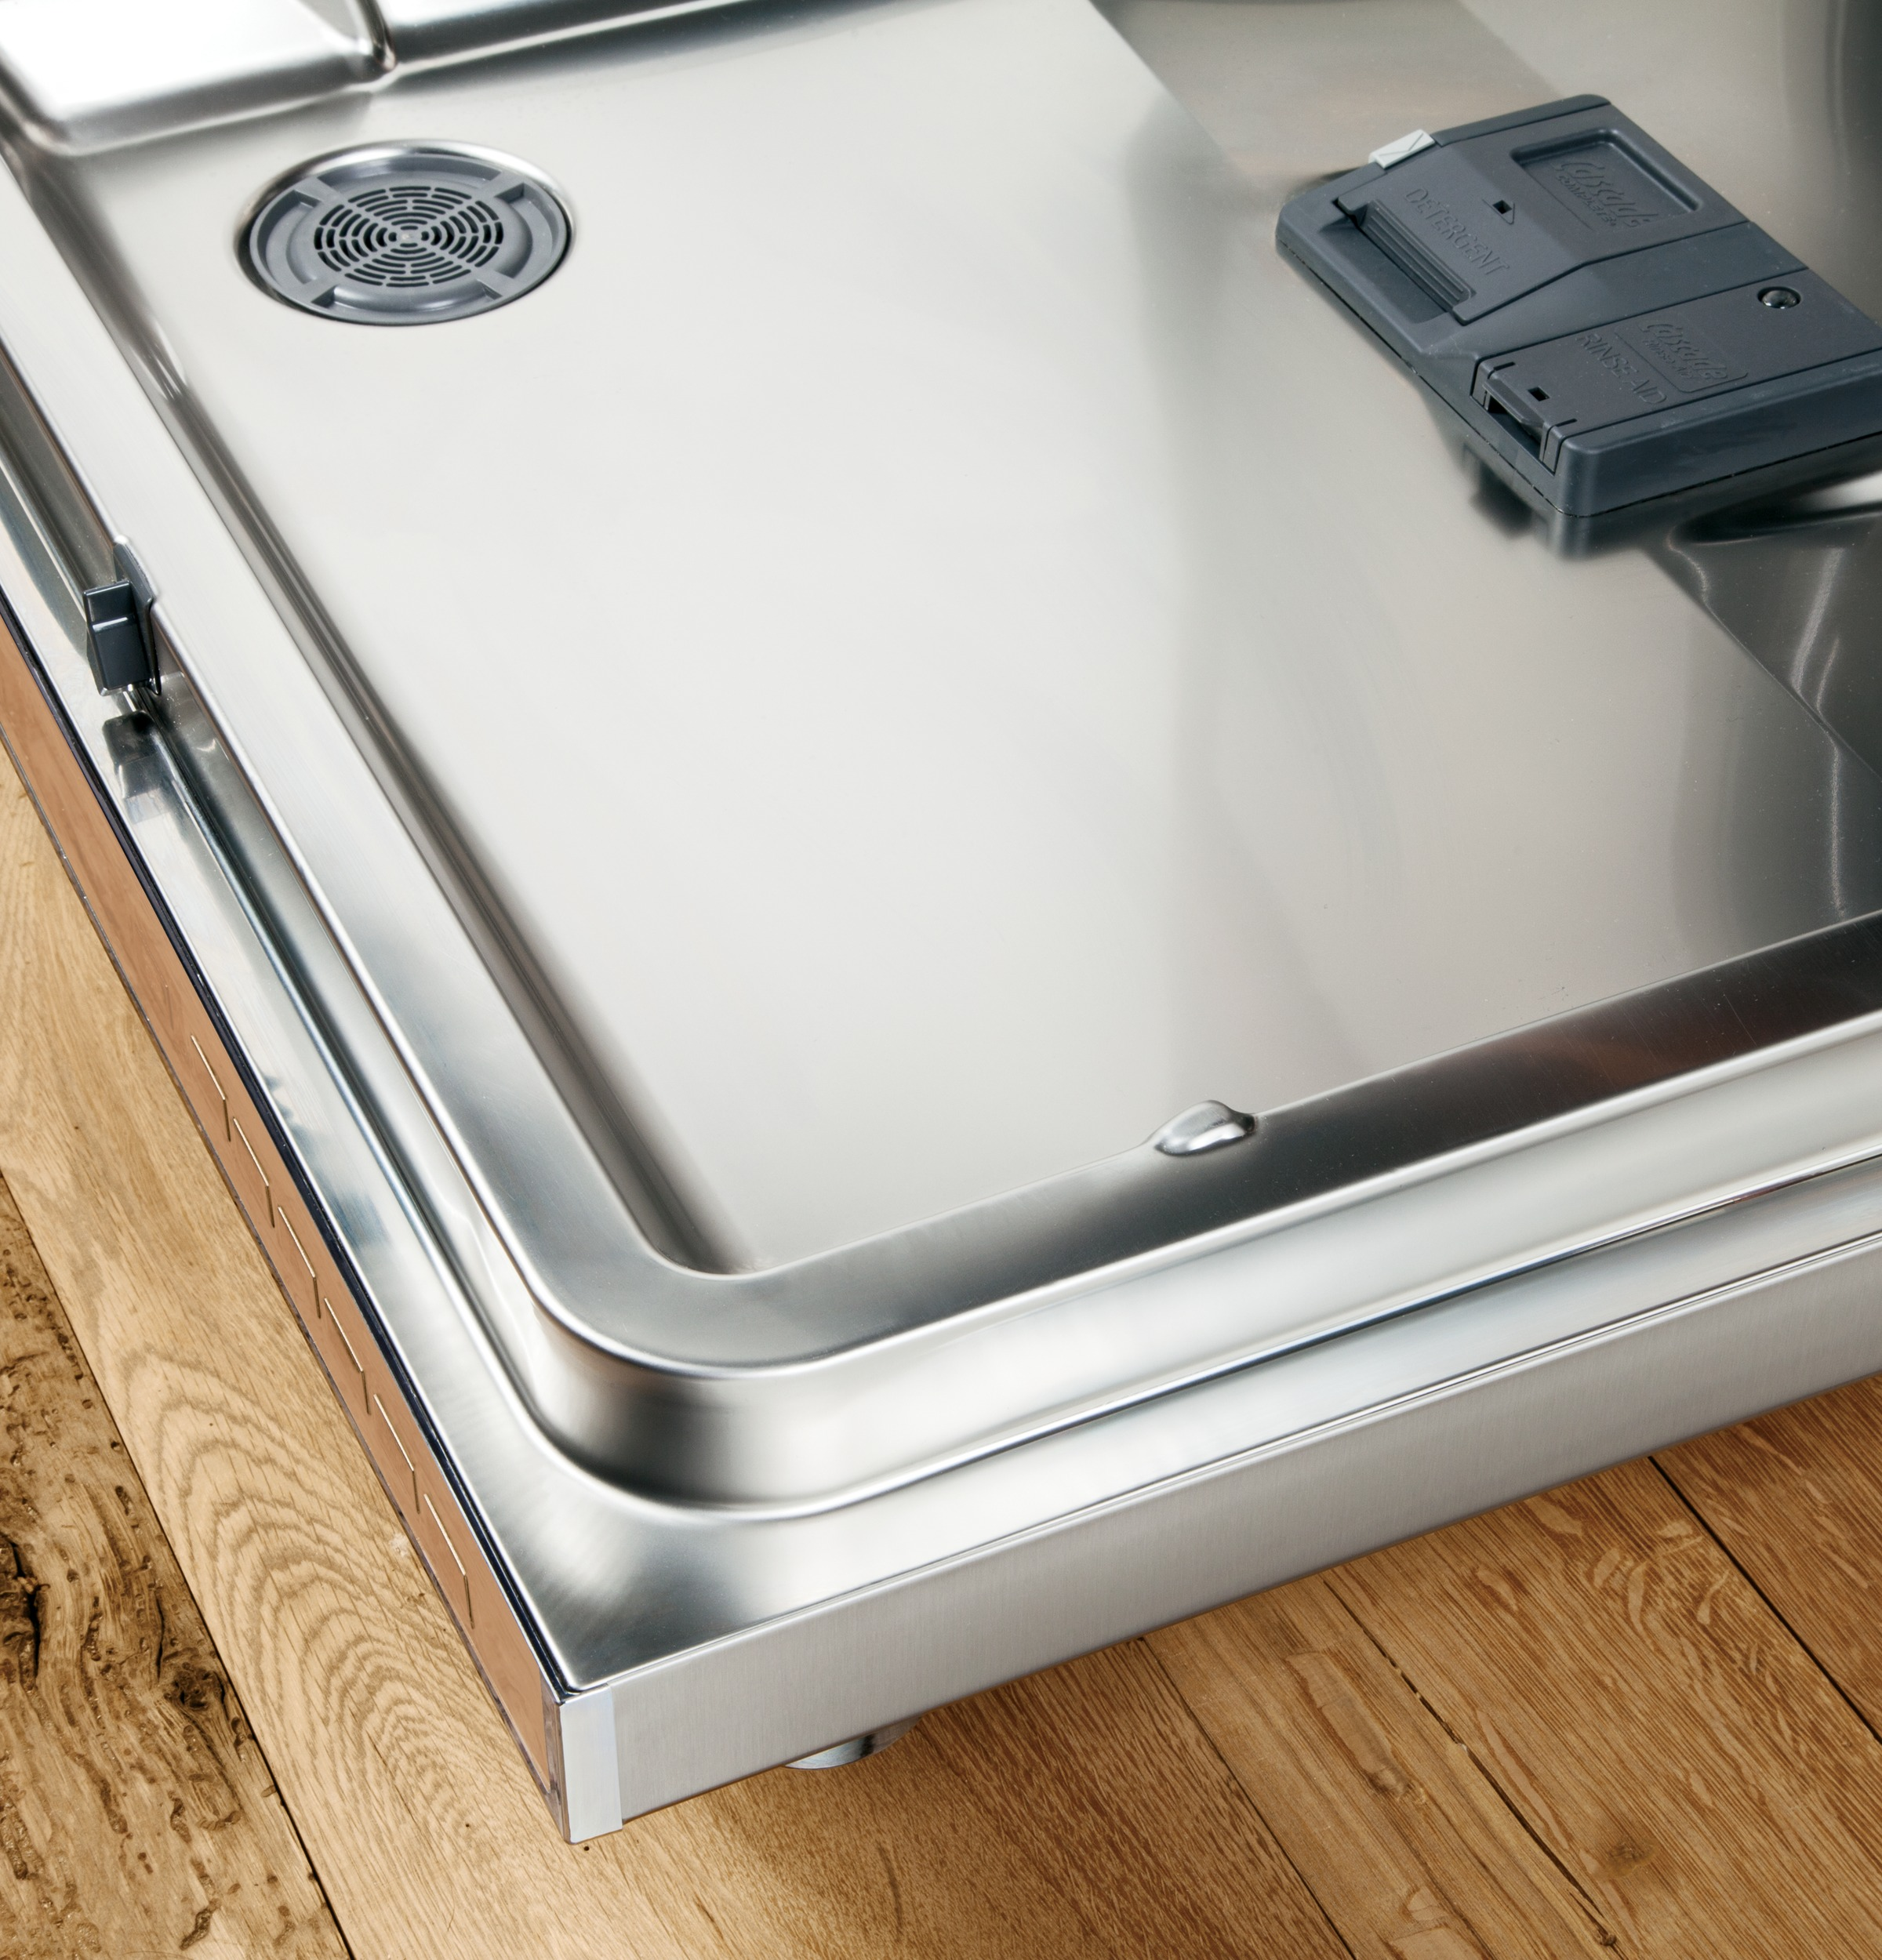 Model: GDT695SSJSS | GE GE® Stainless Steel Interior Dishwasher with Hidden Controls